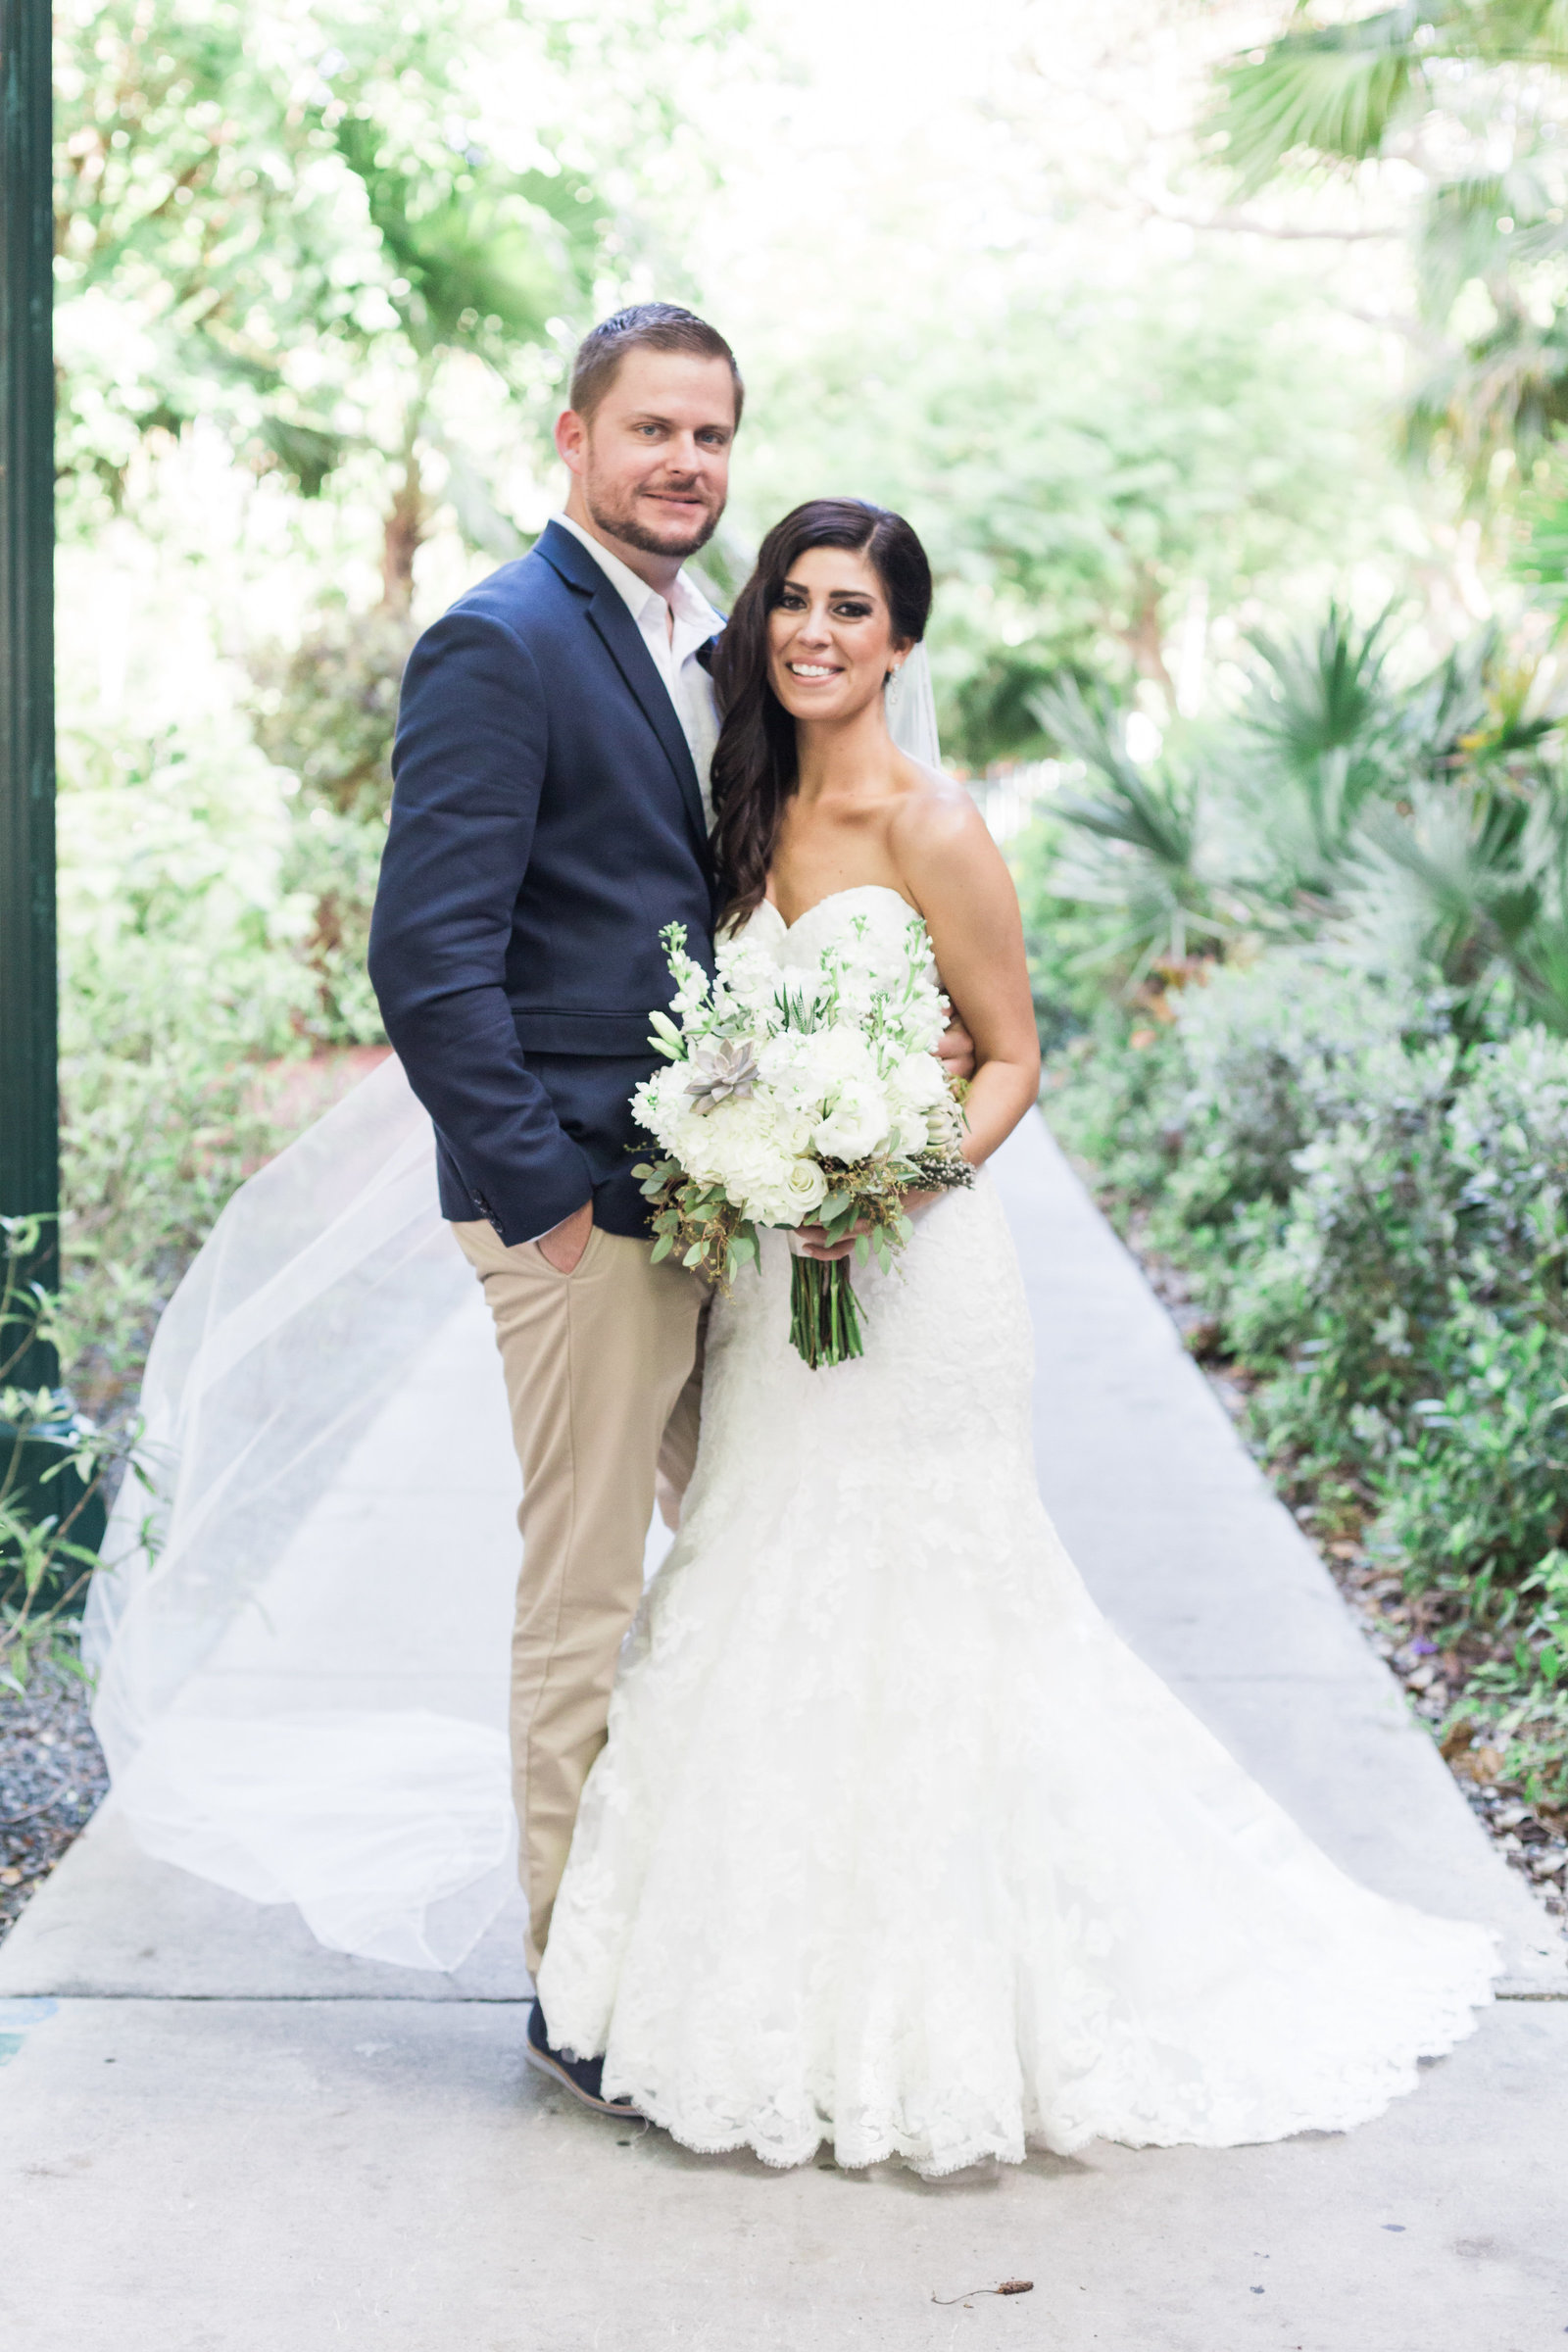 18 - KnoxvilleWeddingPhotographs-44